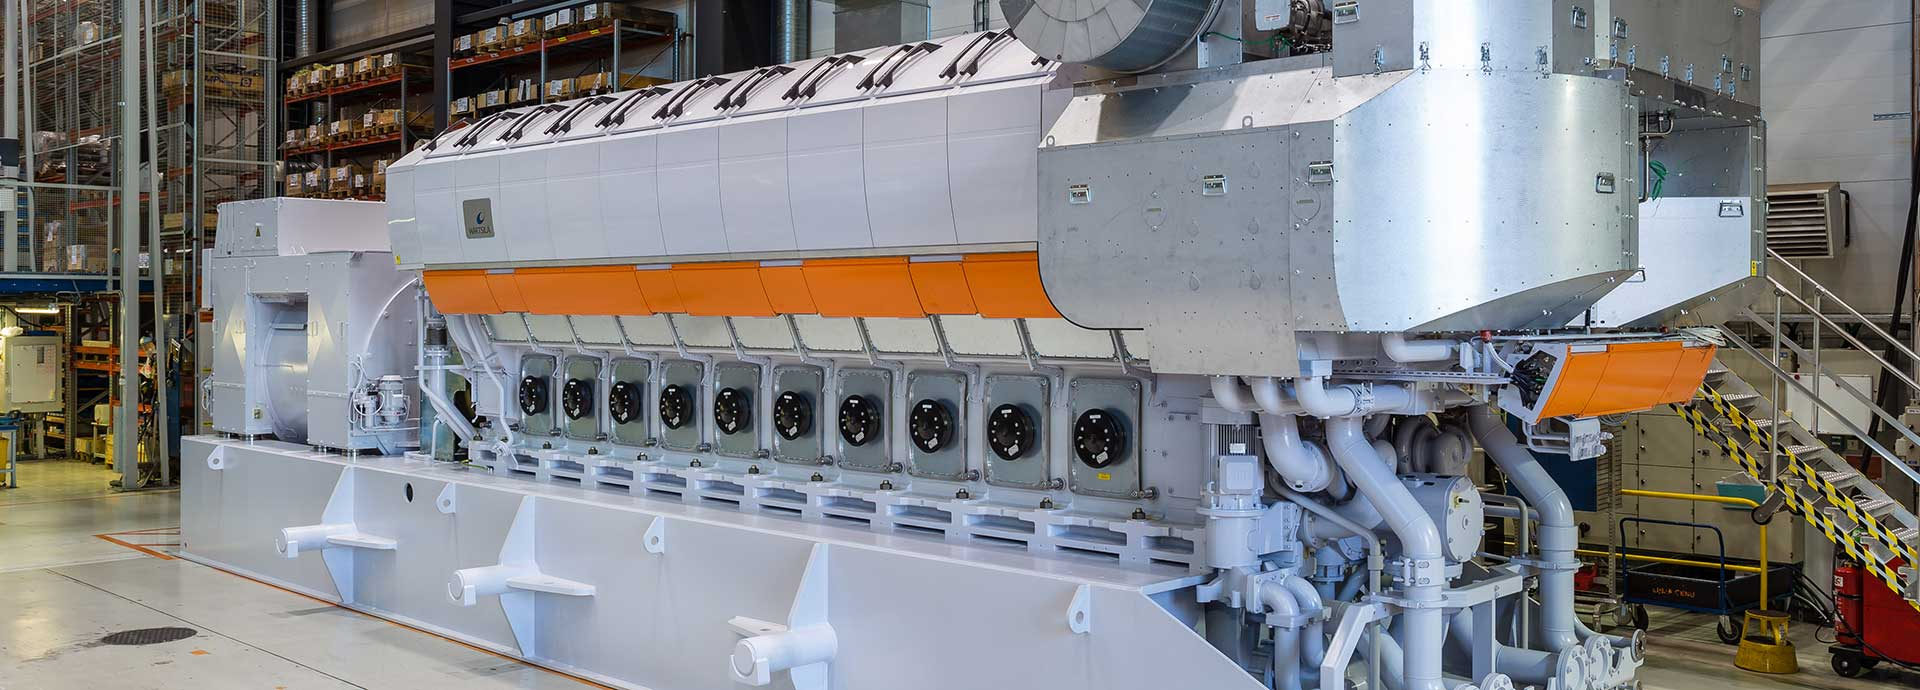 Wartsila sets sight on ambitious emission reduction targets